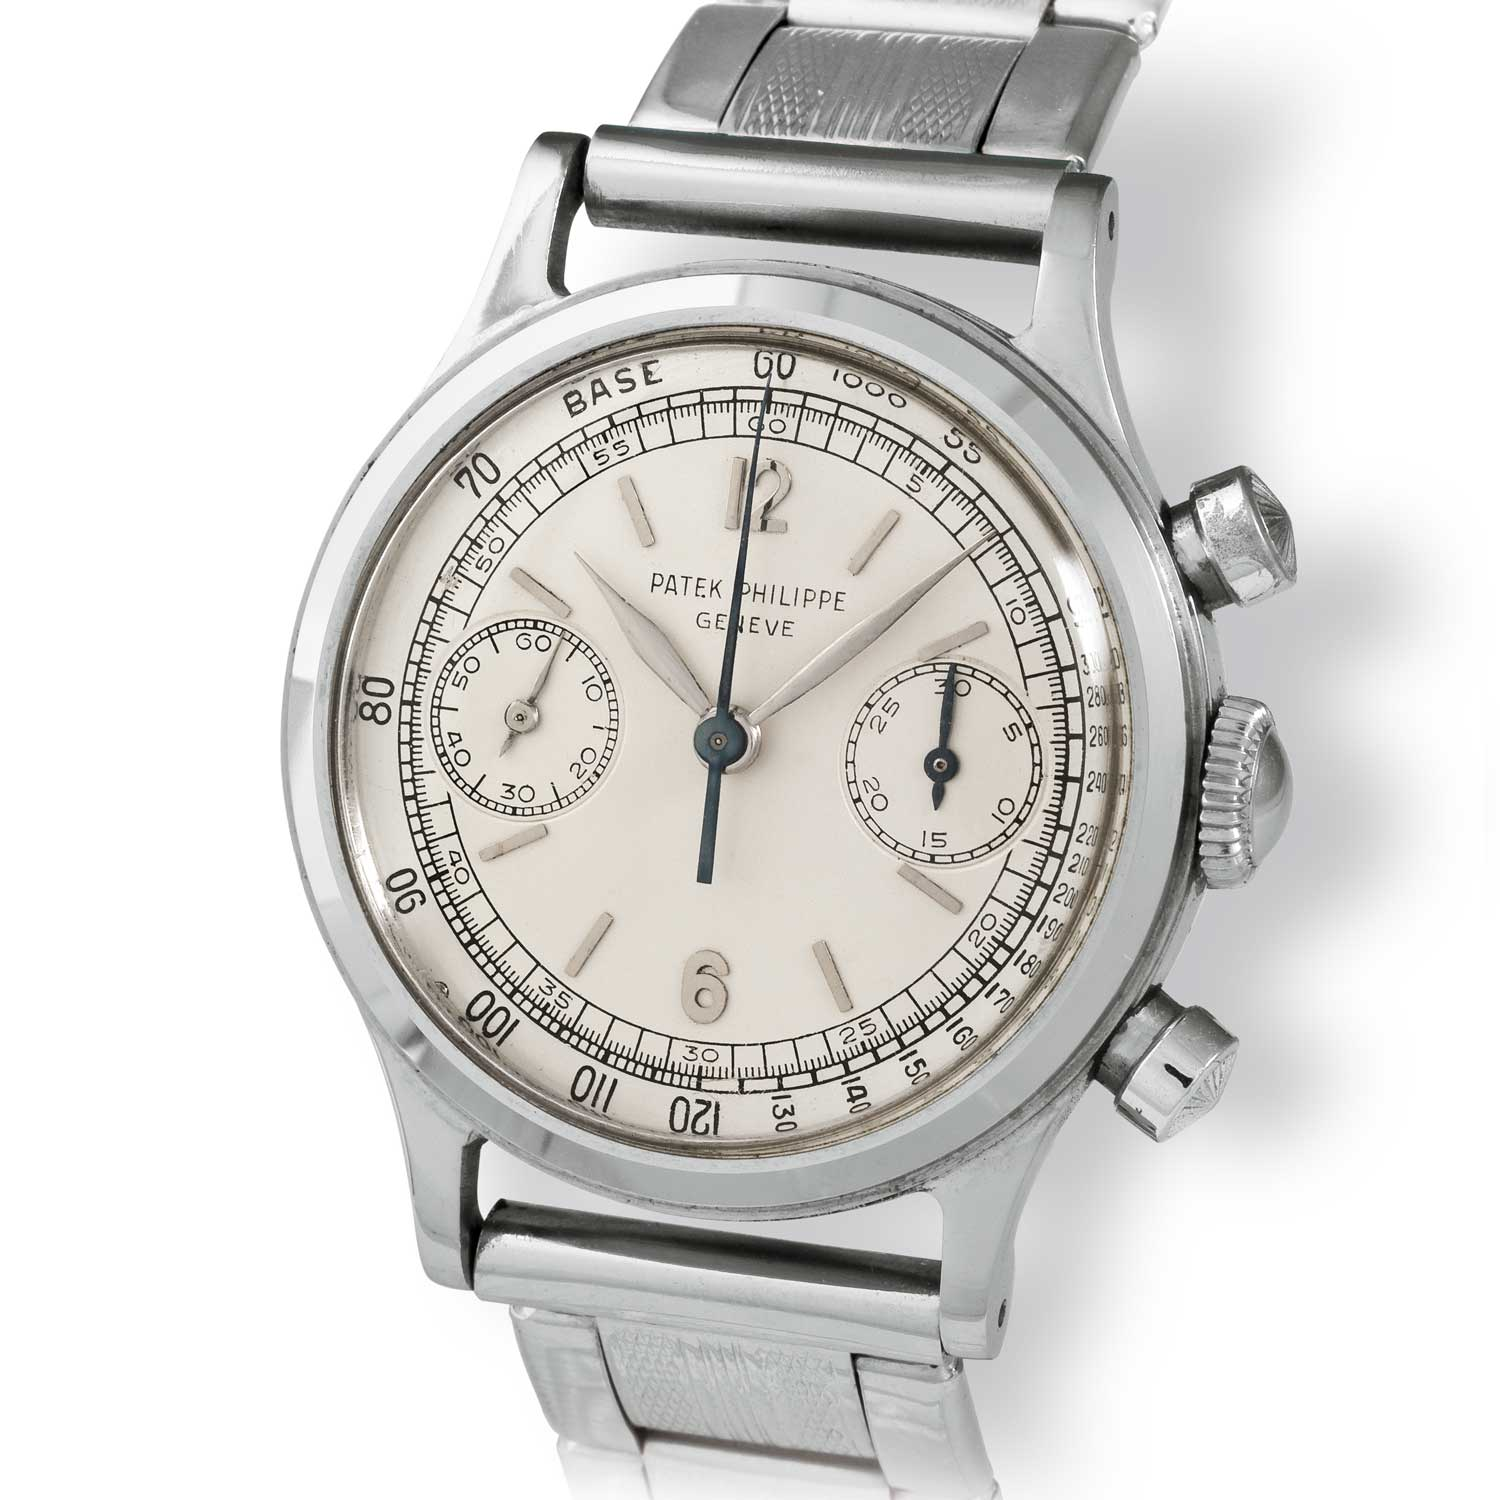 Patek Philippe ref. 1463 steel chronograph with Arabic numerals on a Gay Frères link-model bracelet (Image: John Goldberger)